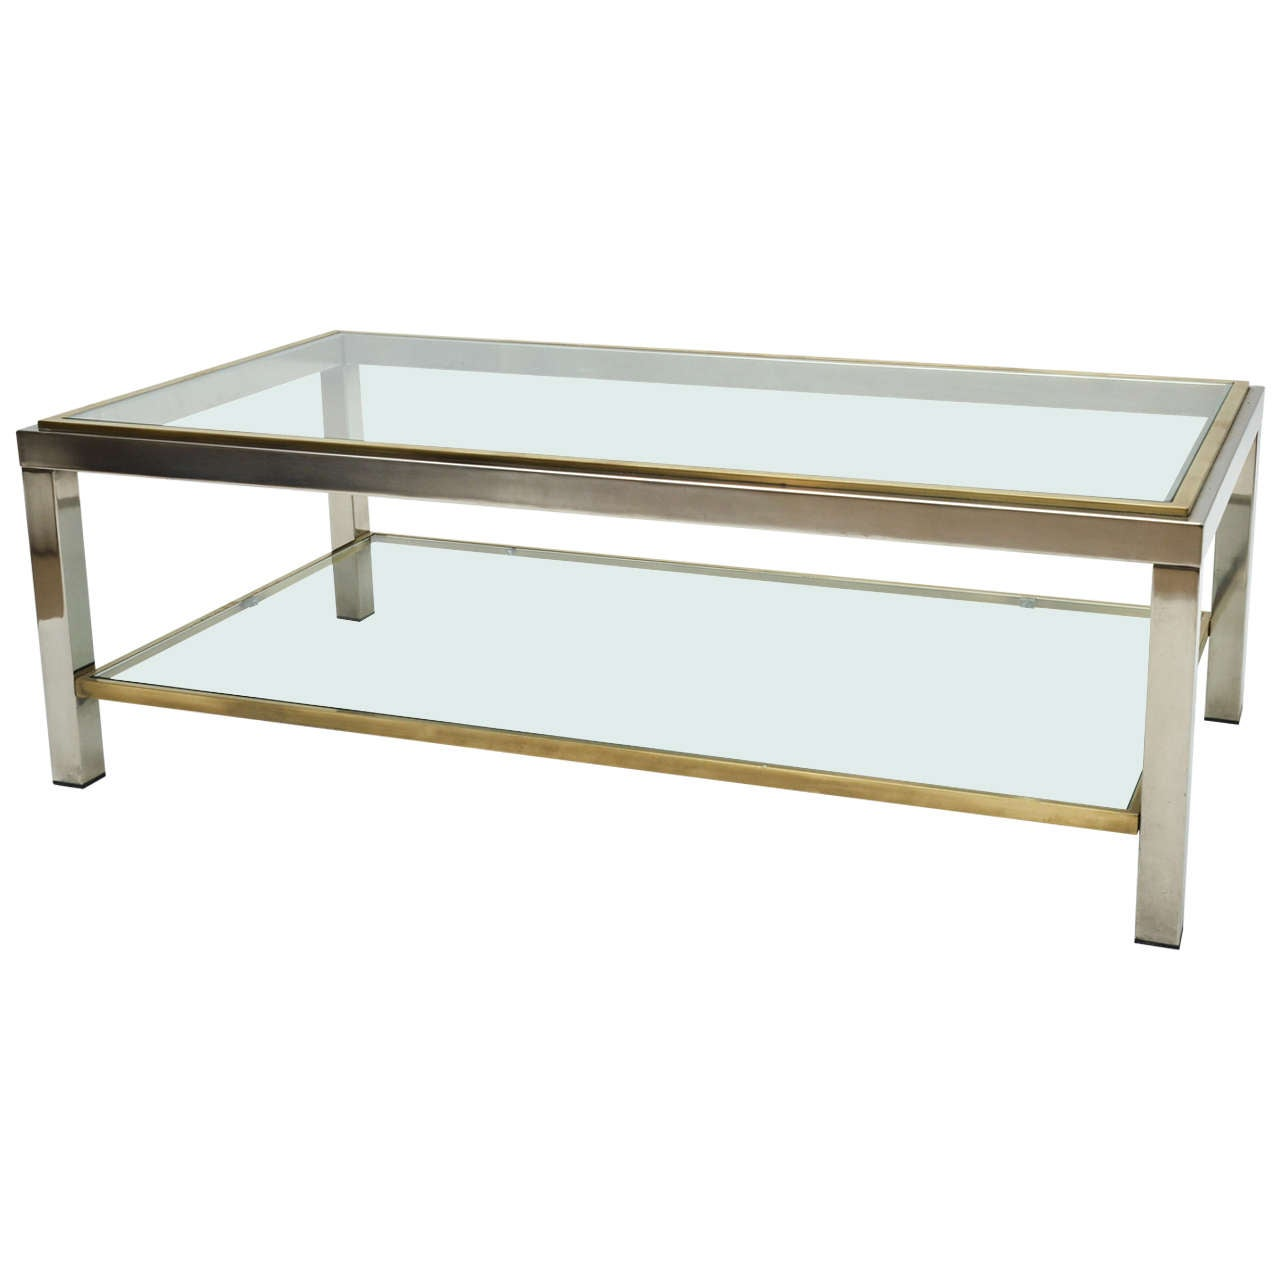 Mid century modern french brass and chrome glass coffee table at 1stdibs Coffee tables glass